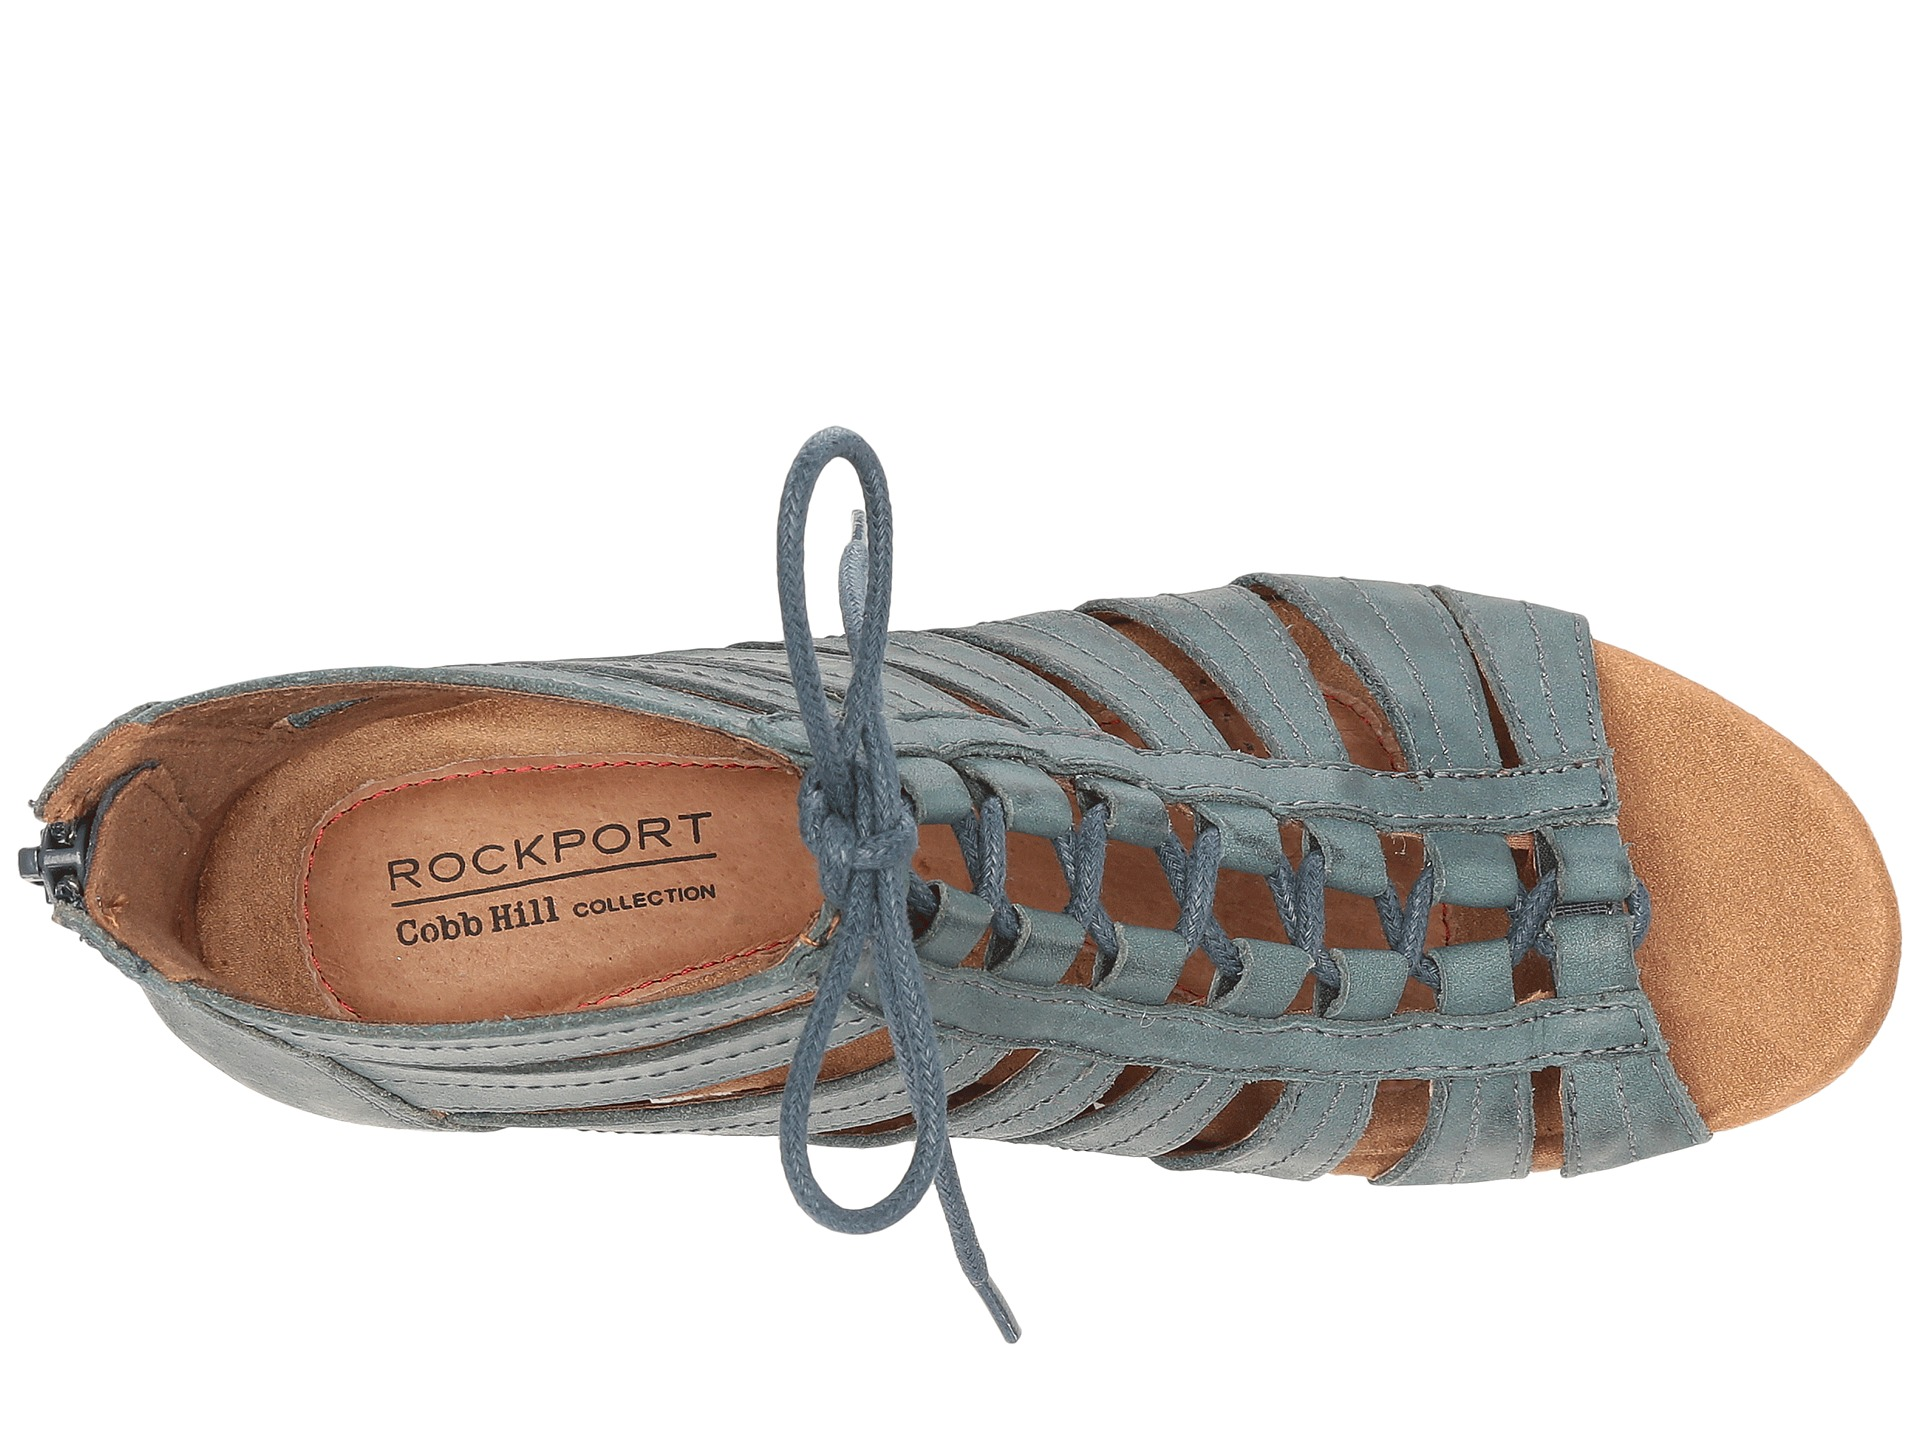 Rockport Cobb Hill Collection Cobb Hill Gabby At Zappos Com